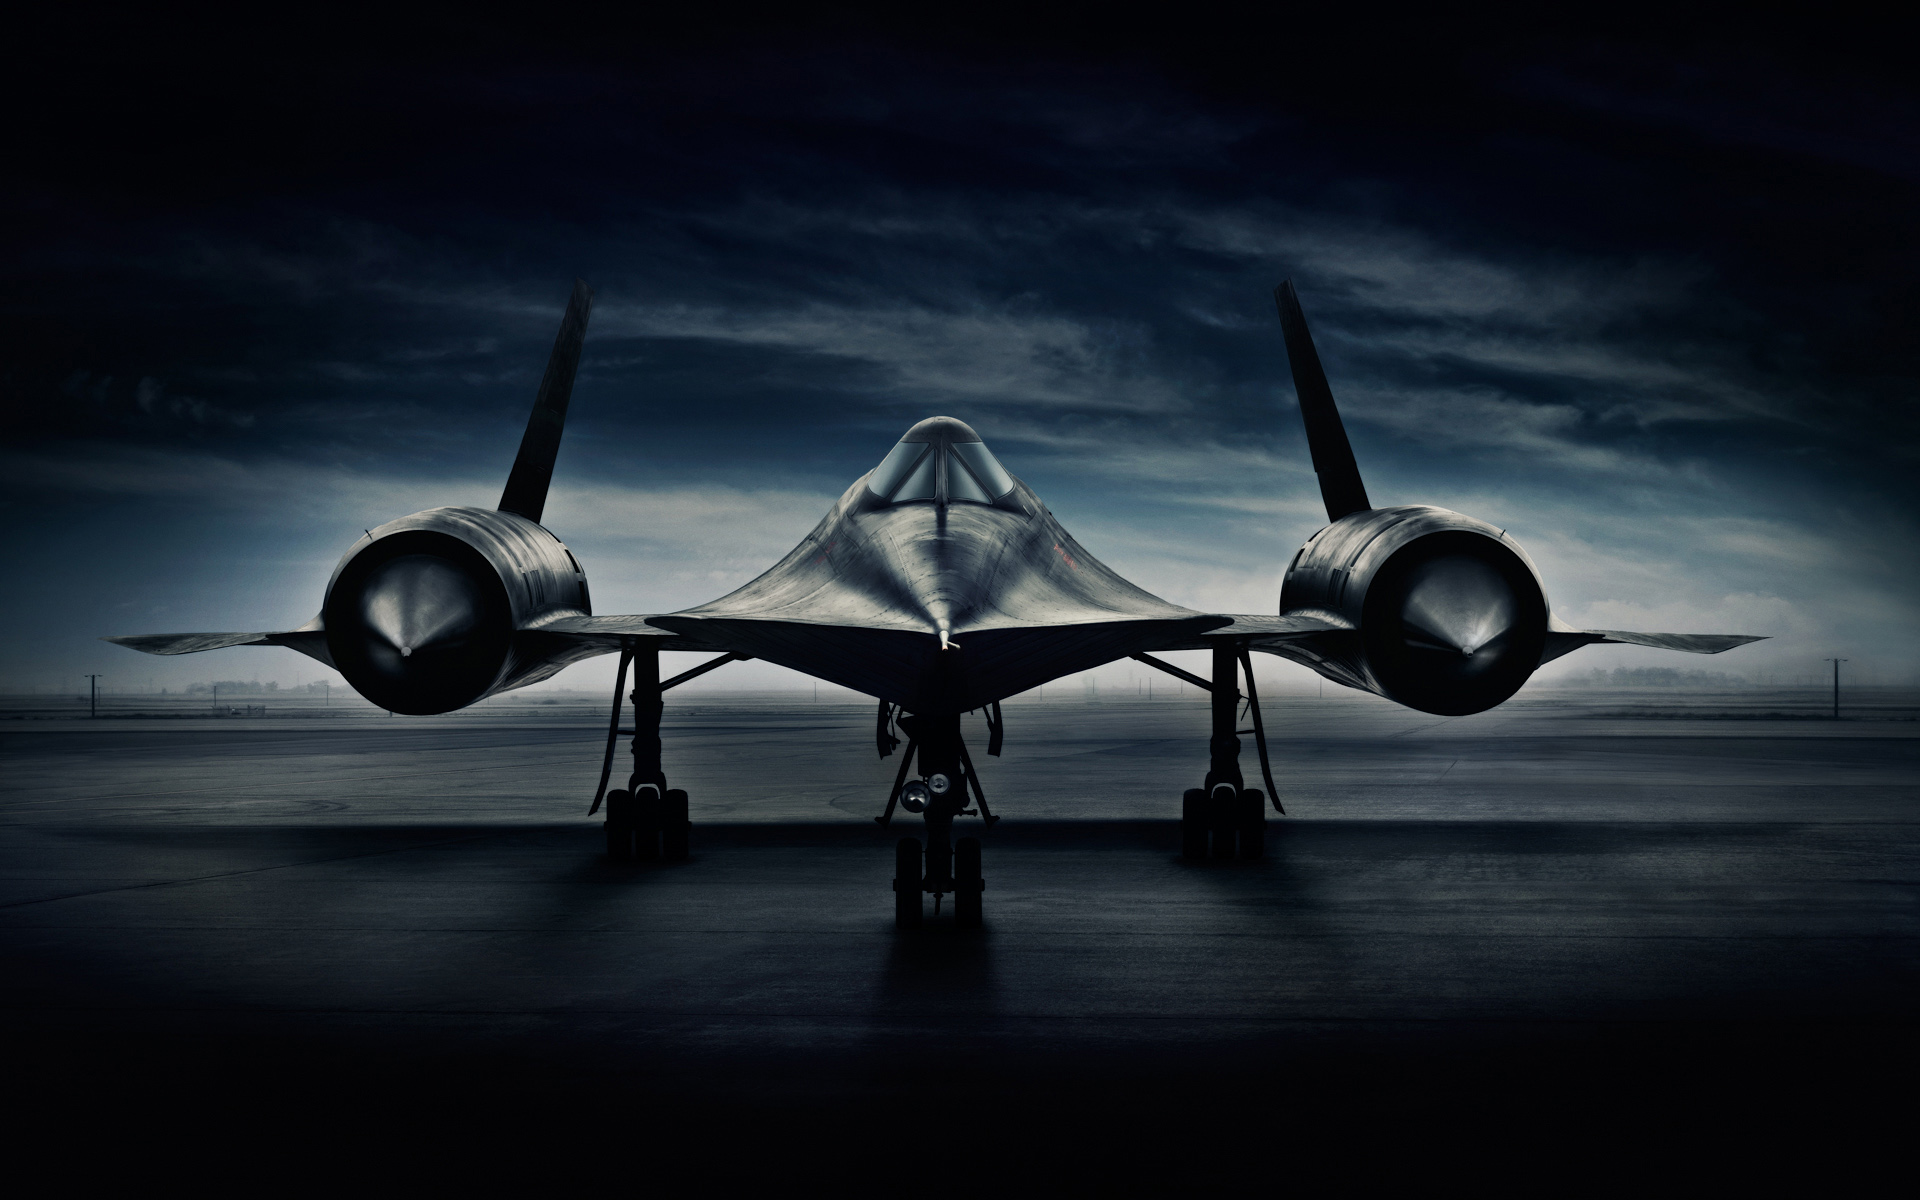 SR71 Blackbird Automotive Photographer Blair Bunting